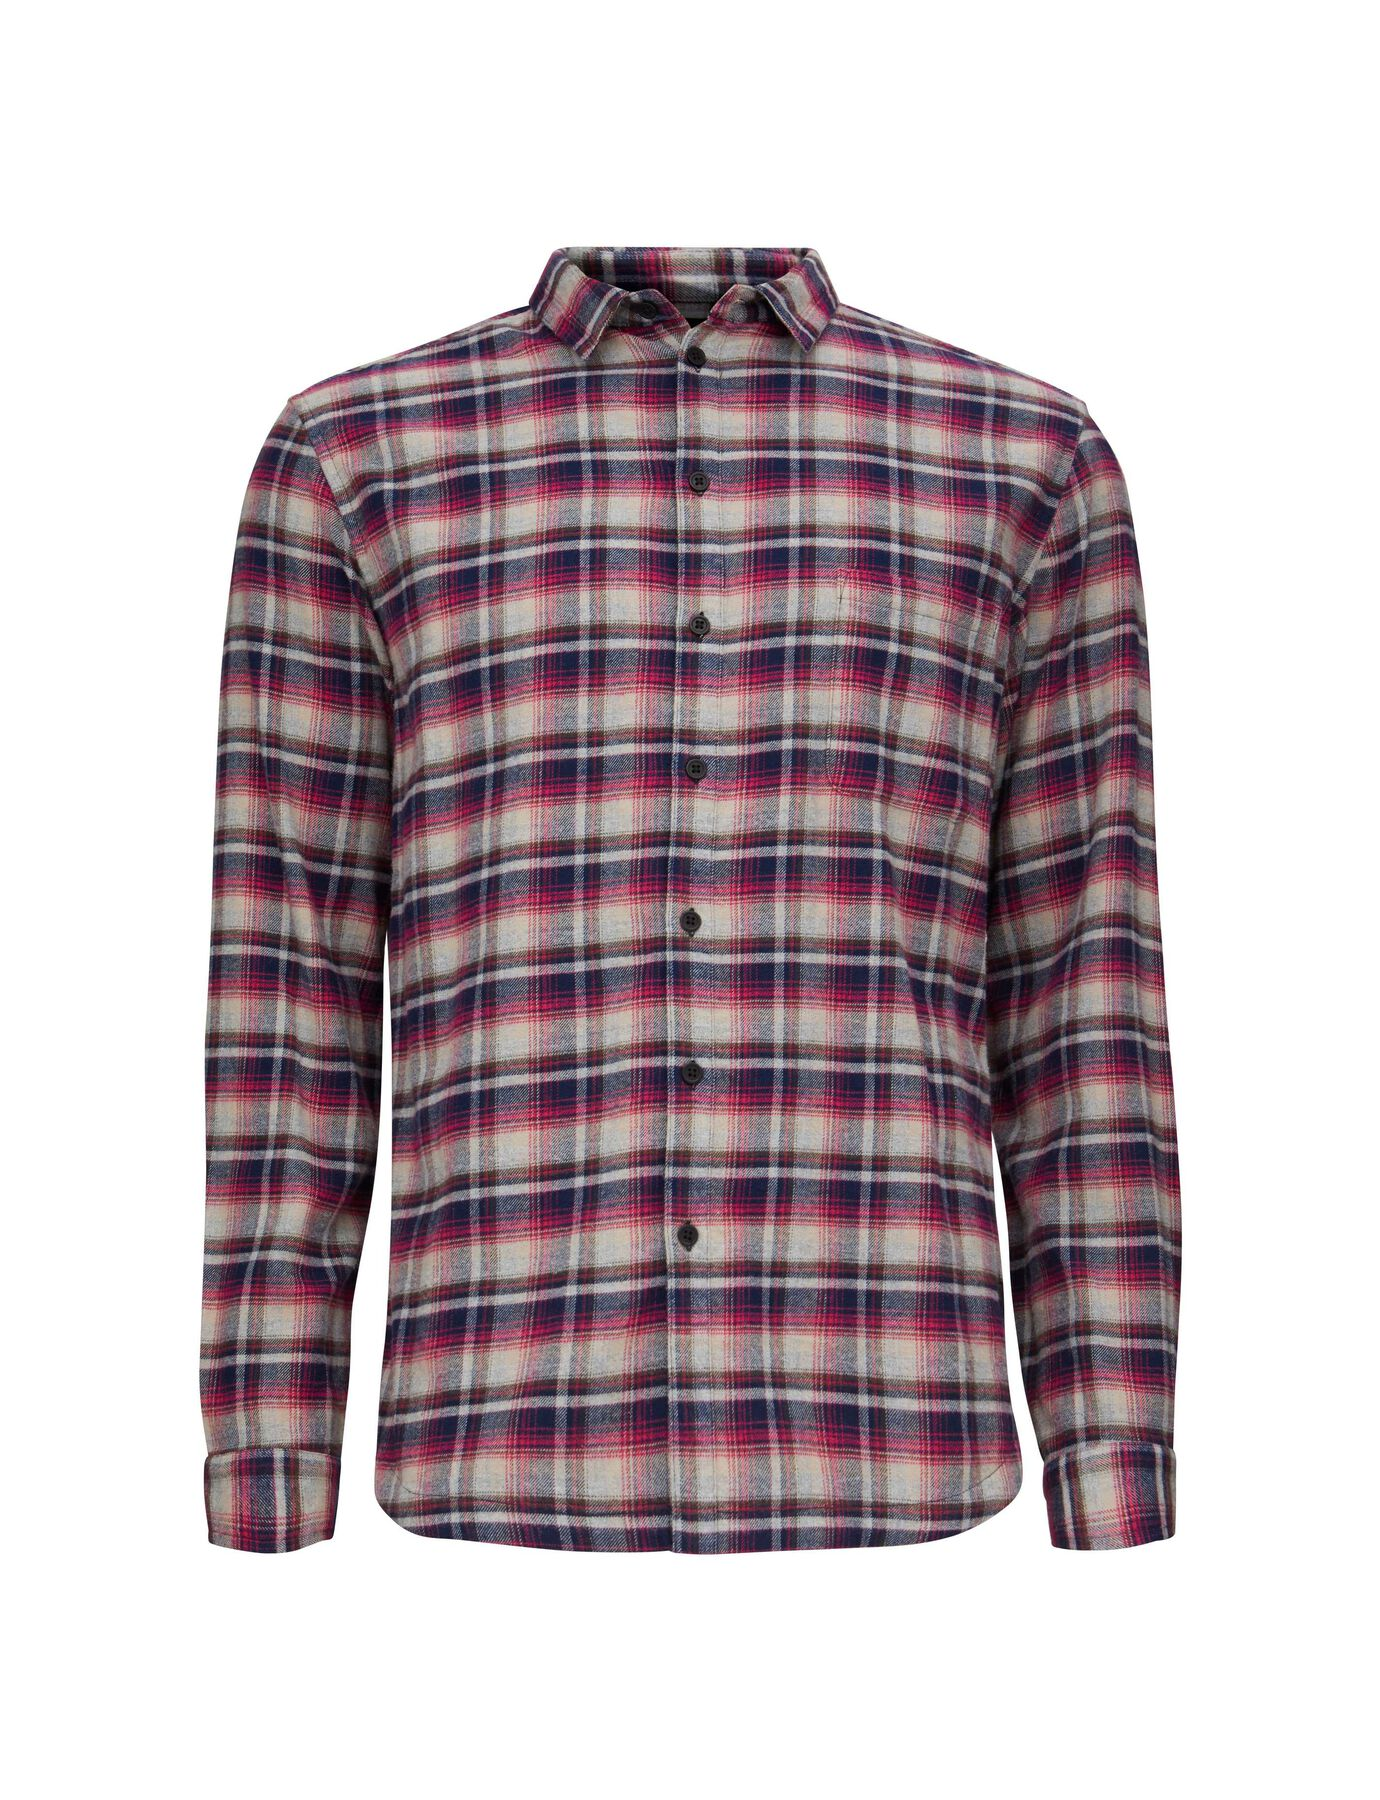 MELLOW CH1 SHIRT in Pattern from Tiger of Sweden